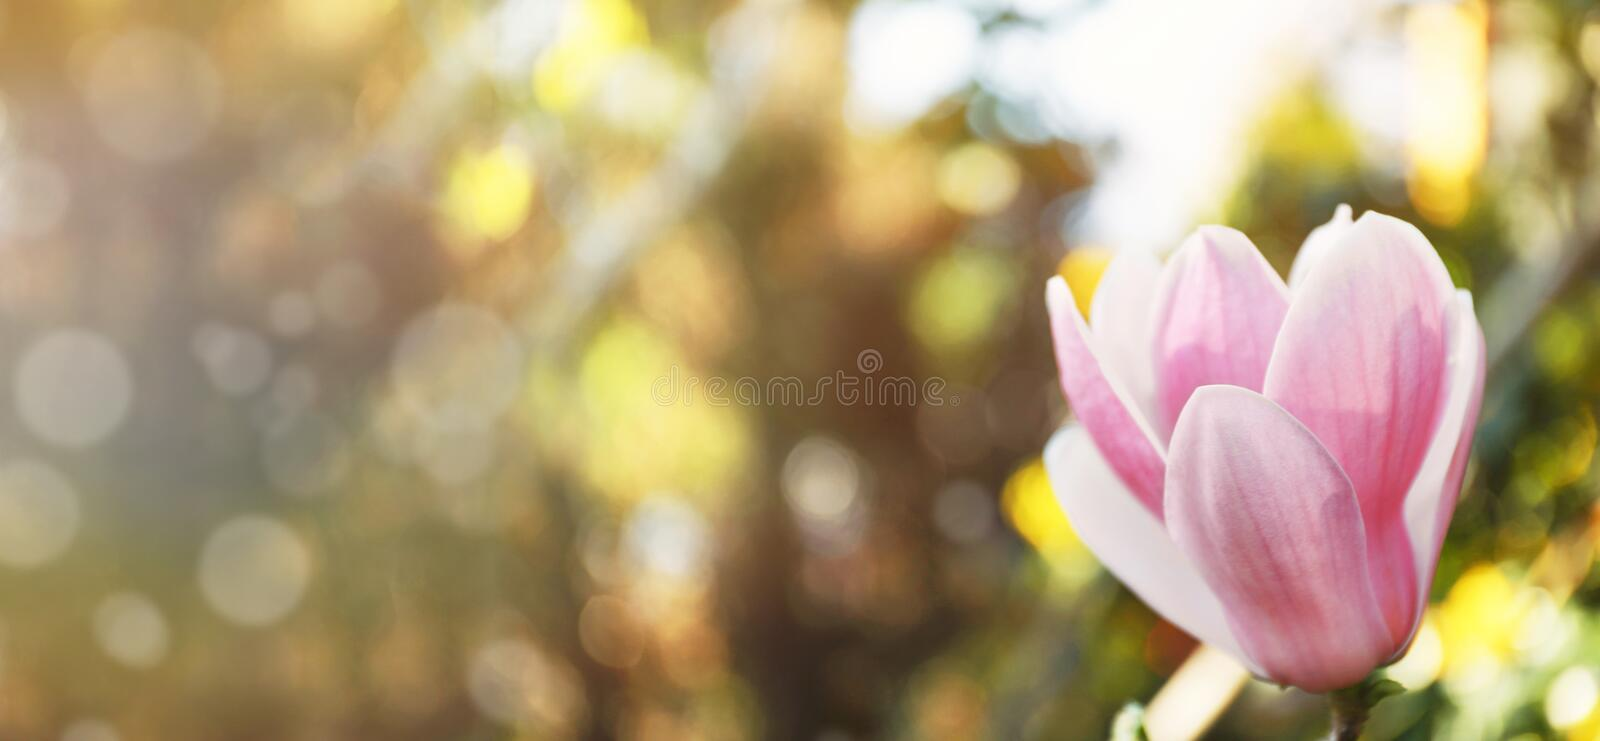 Beautiful magnolia flower. Amazing spring blossom royalty free stock images